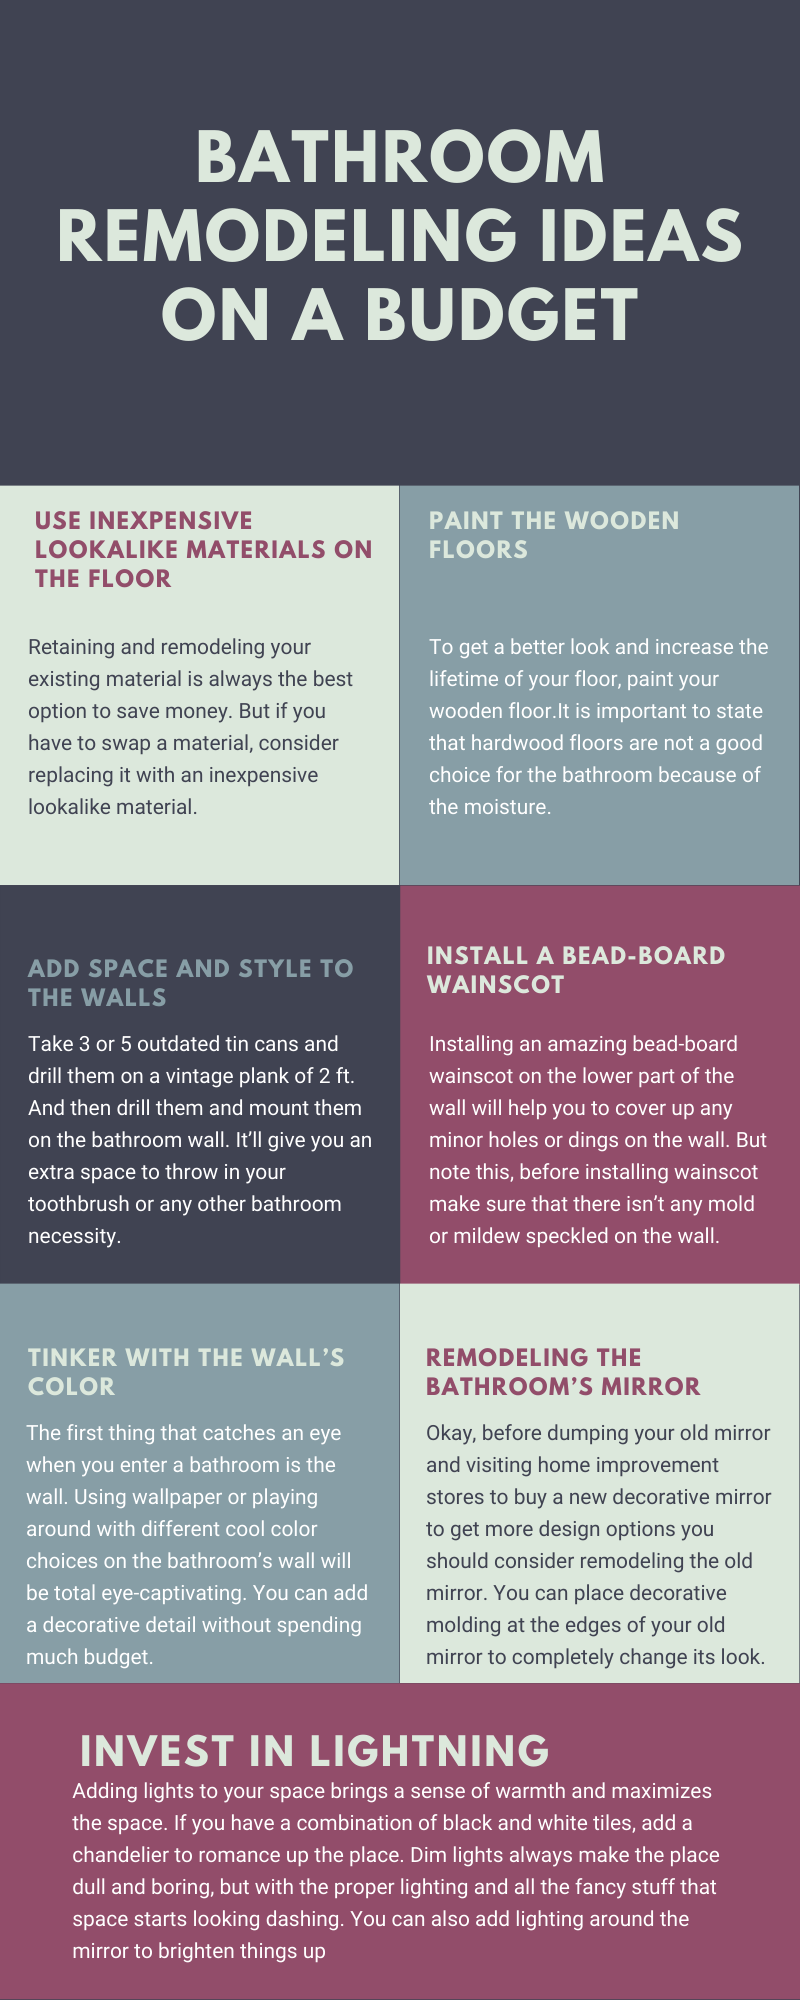 Bathroom Remodeling Ideas on a Budget - Infographic